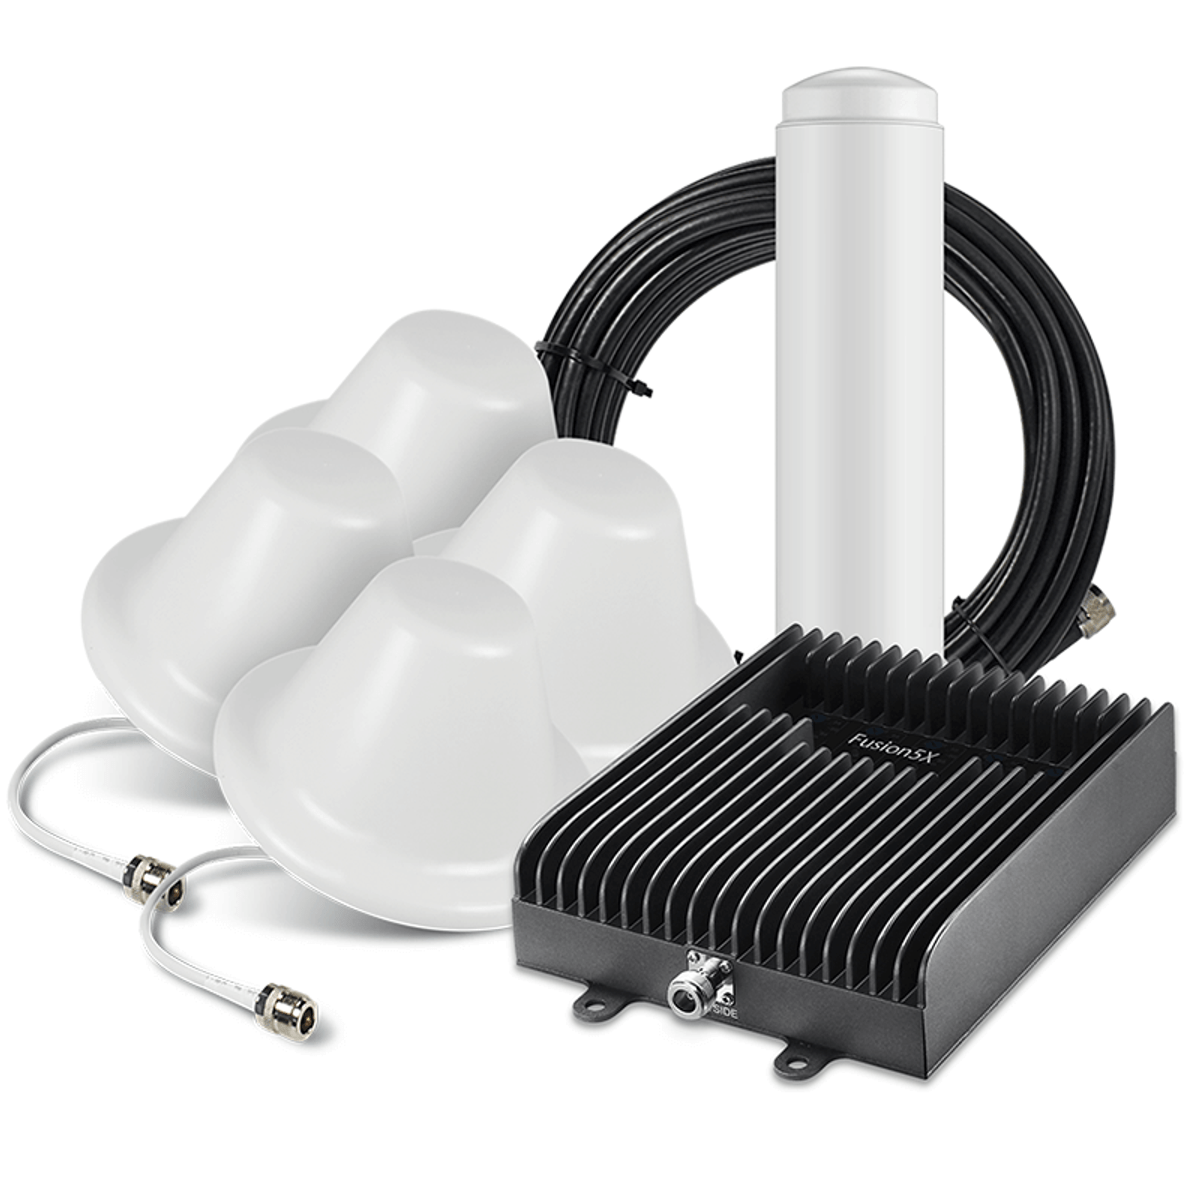 SureCall Fusion5X 2.0 Signal Booster Kit with 4 Inside / 1 Outside Antennas